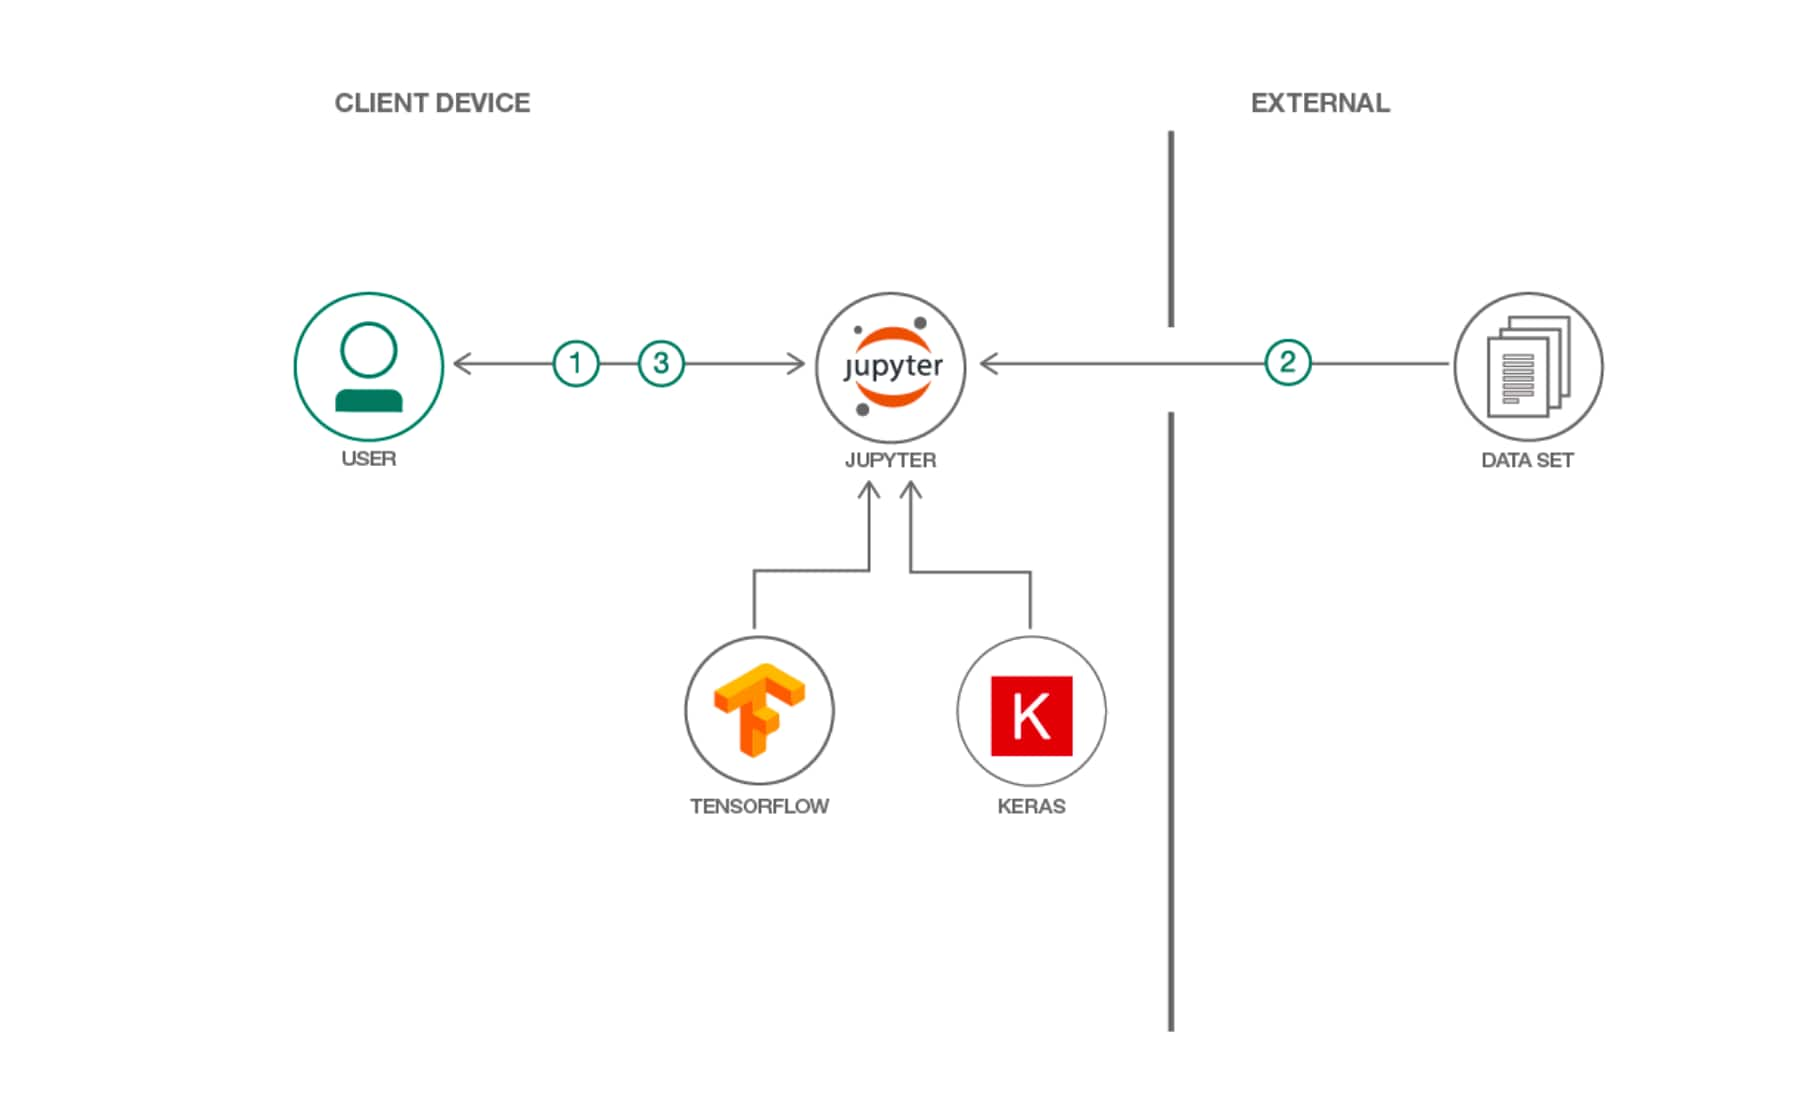 Diagram showing flow from data set to user via Jupyter notebook, TensorFlow and Keras